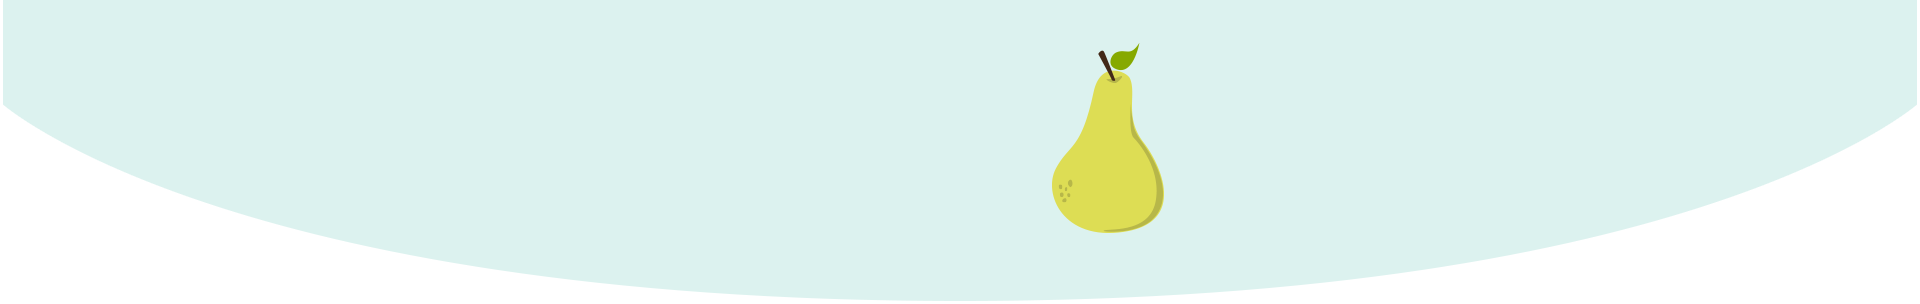 baby size of pear week 17